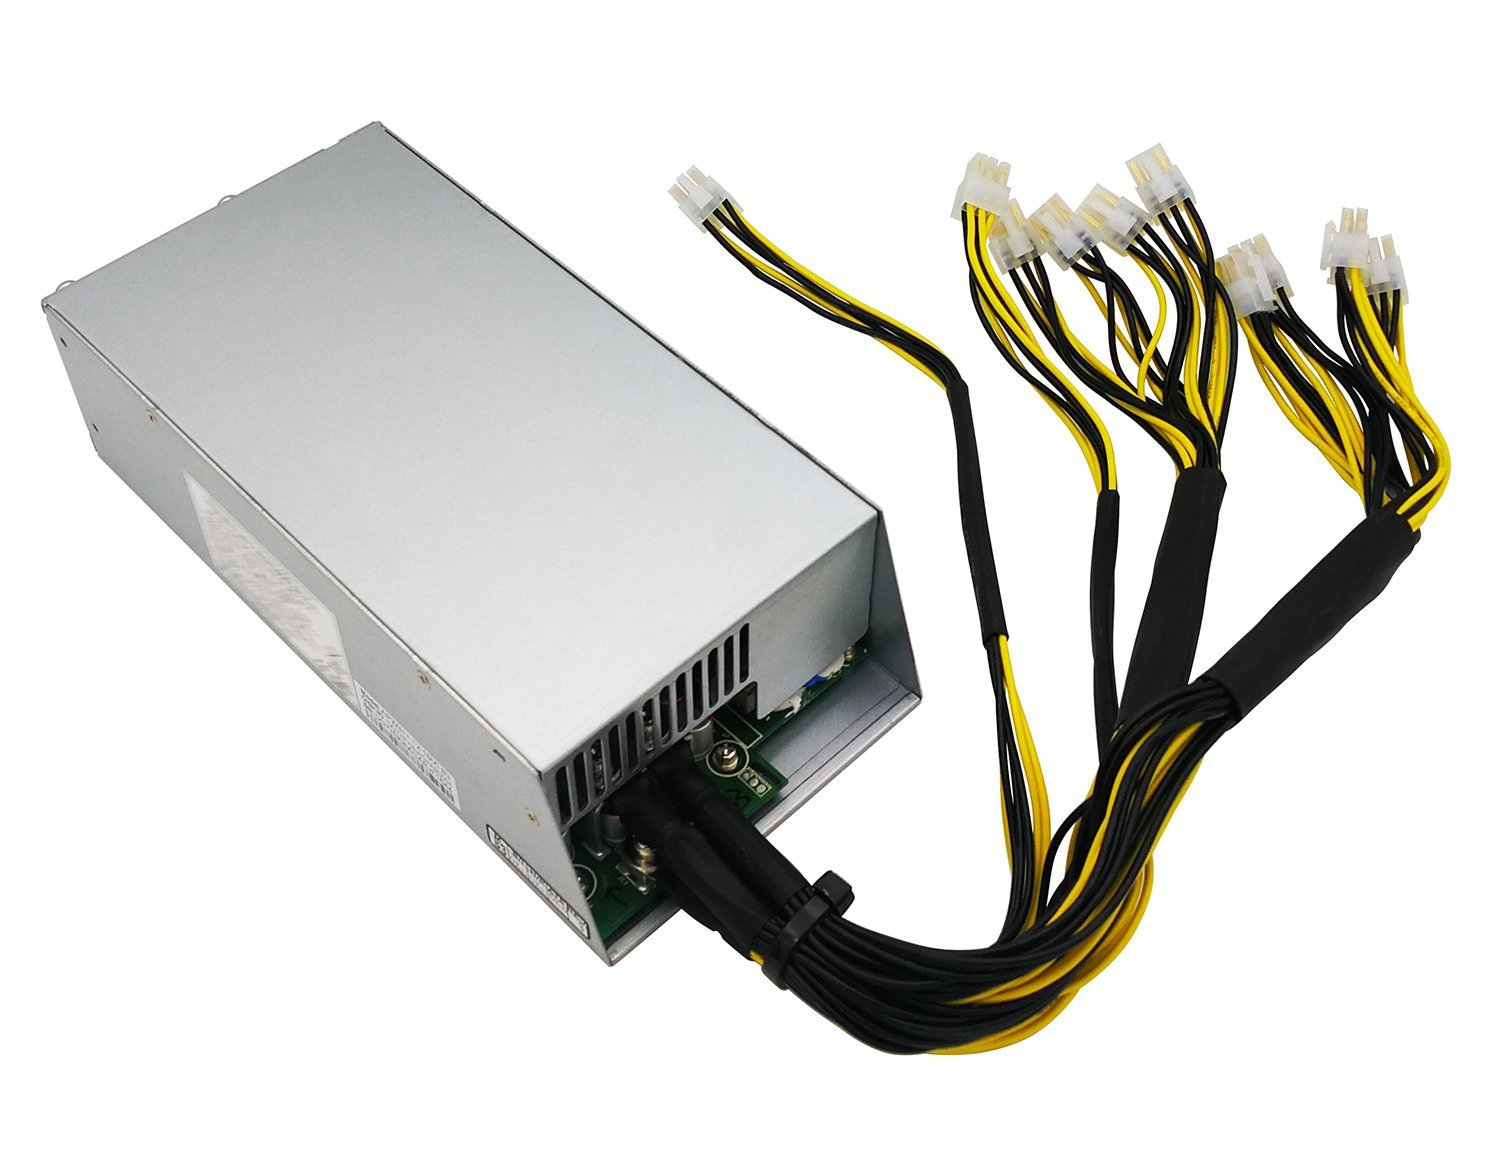 Switching Power Supply for Bitmain AntMiner L3+ S9 T9 (Model Number: APW3++-12-1600-A3), Wide Voltage Design, 1200W / 1600W , 10 of 6-pin PCIe Connectors